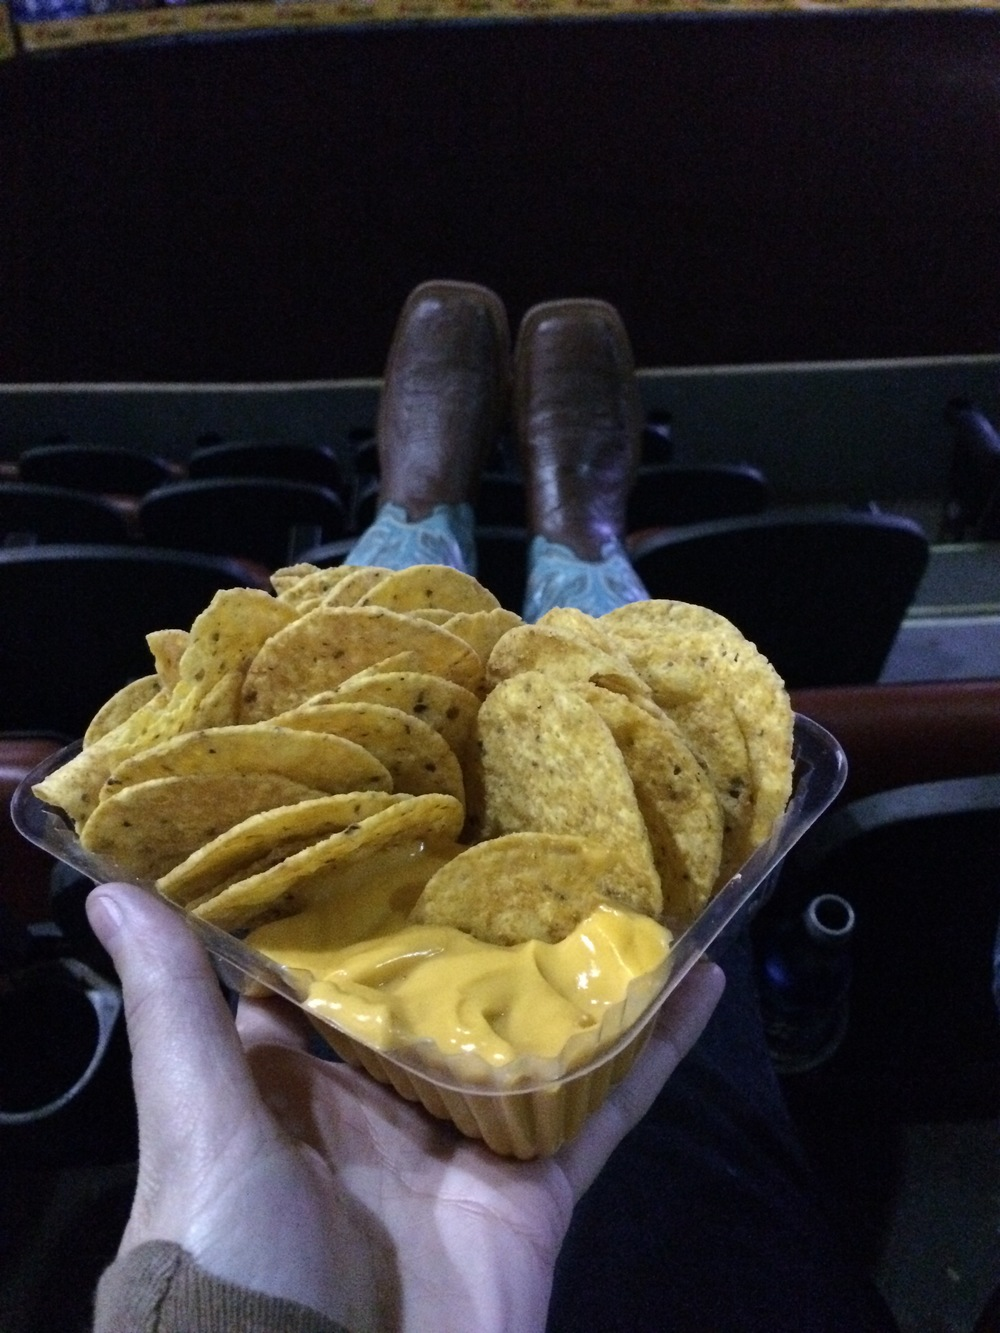 International Finals Rodeo 45 - Nachos and Boots | Mrs Robbins Sparkles